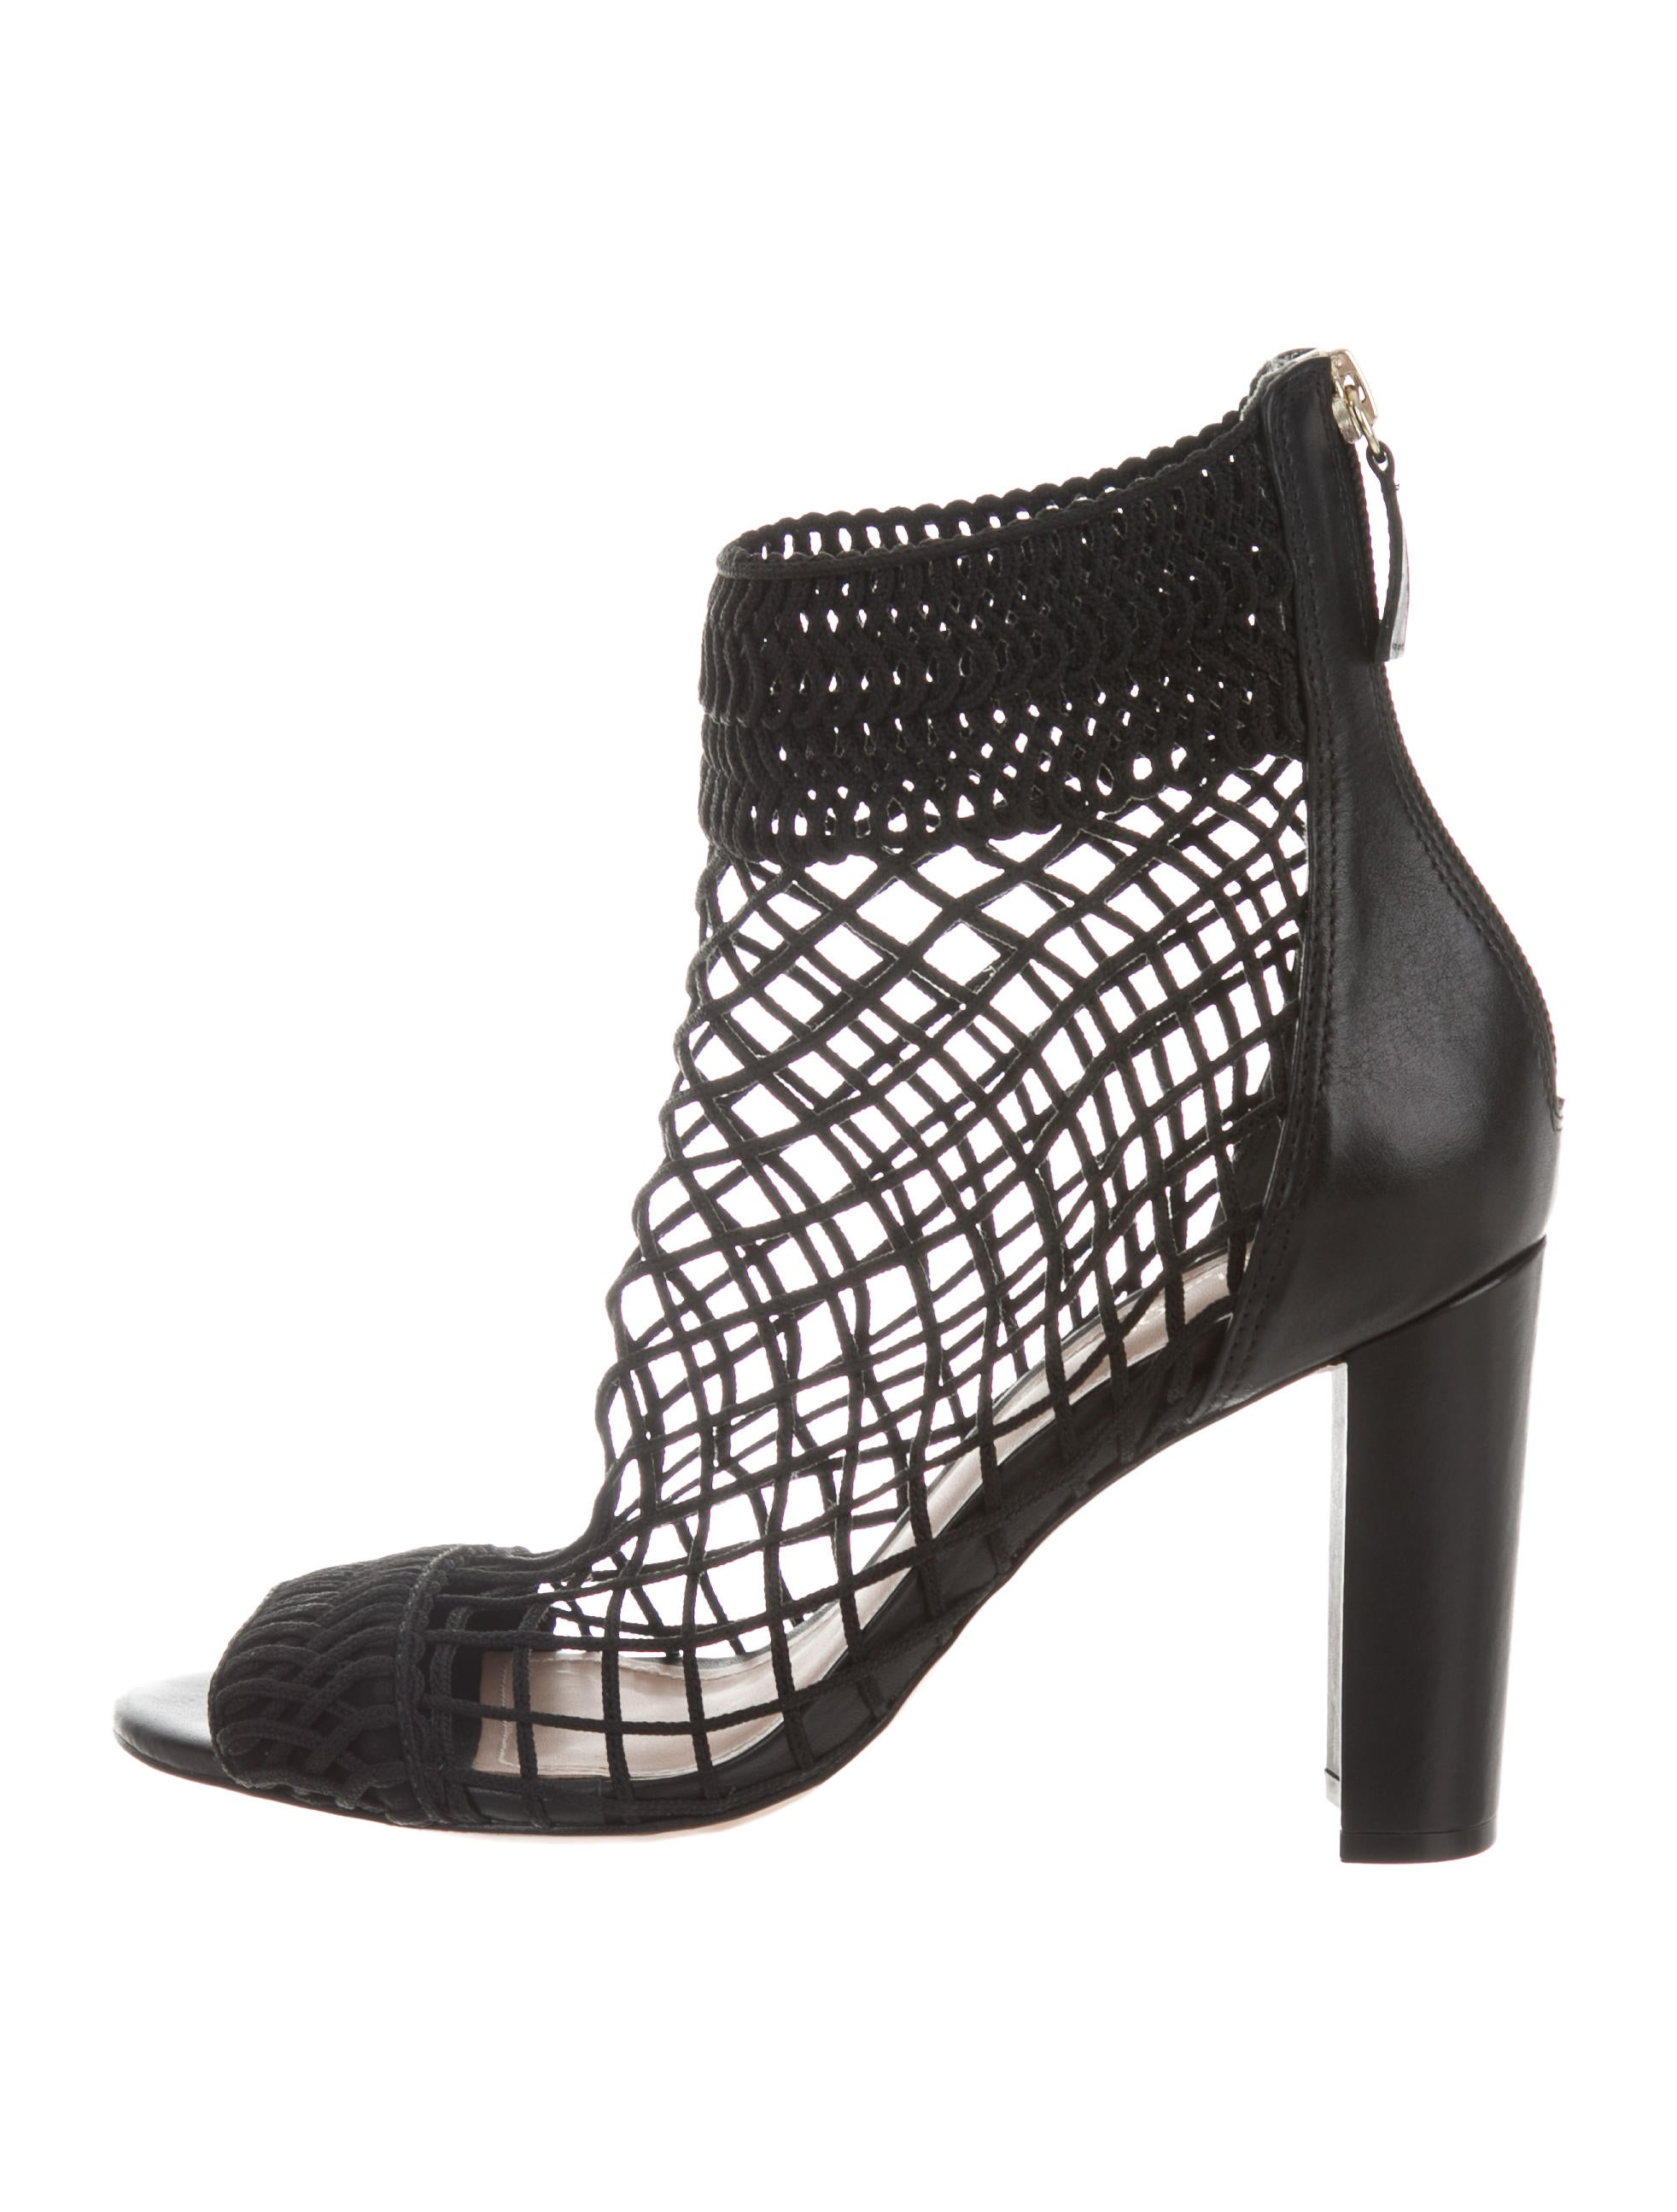 Rachel Zoe Callie Peep-Toe Booties w/ Tags sale official buy cheap low price fee shipping cheap original pictures cheap price 2015 new cheap price 9MNjVQg